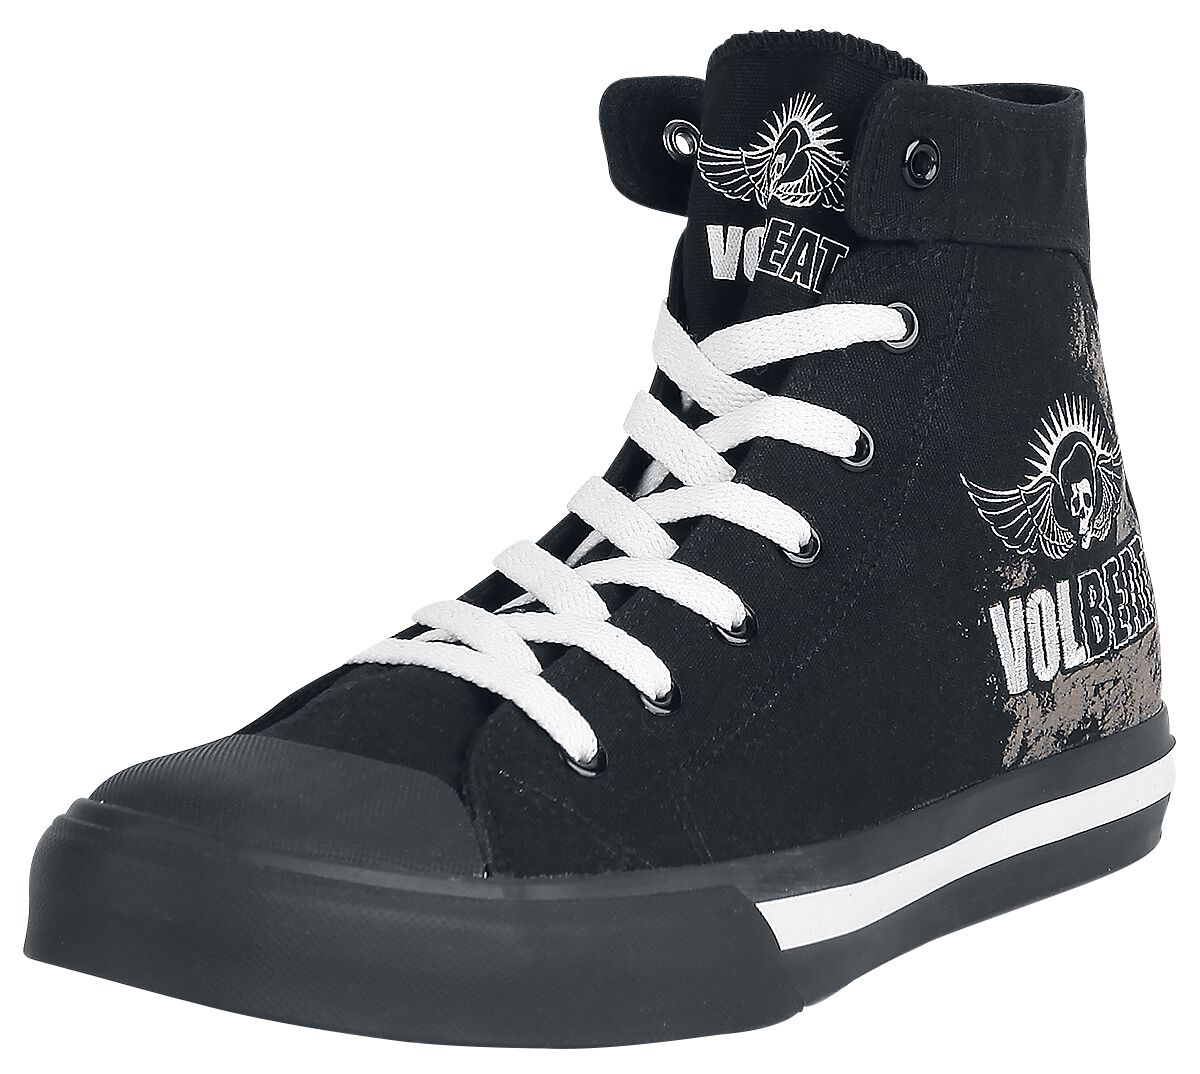 Image of   Volbeat Skullwing Sneakers sort